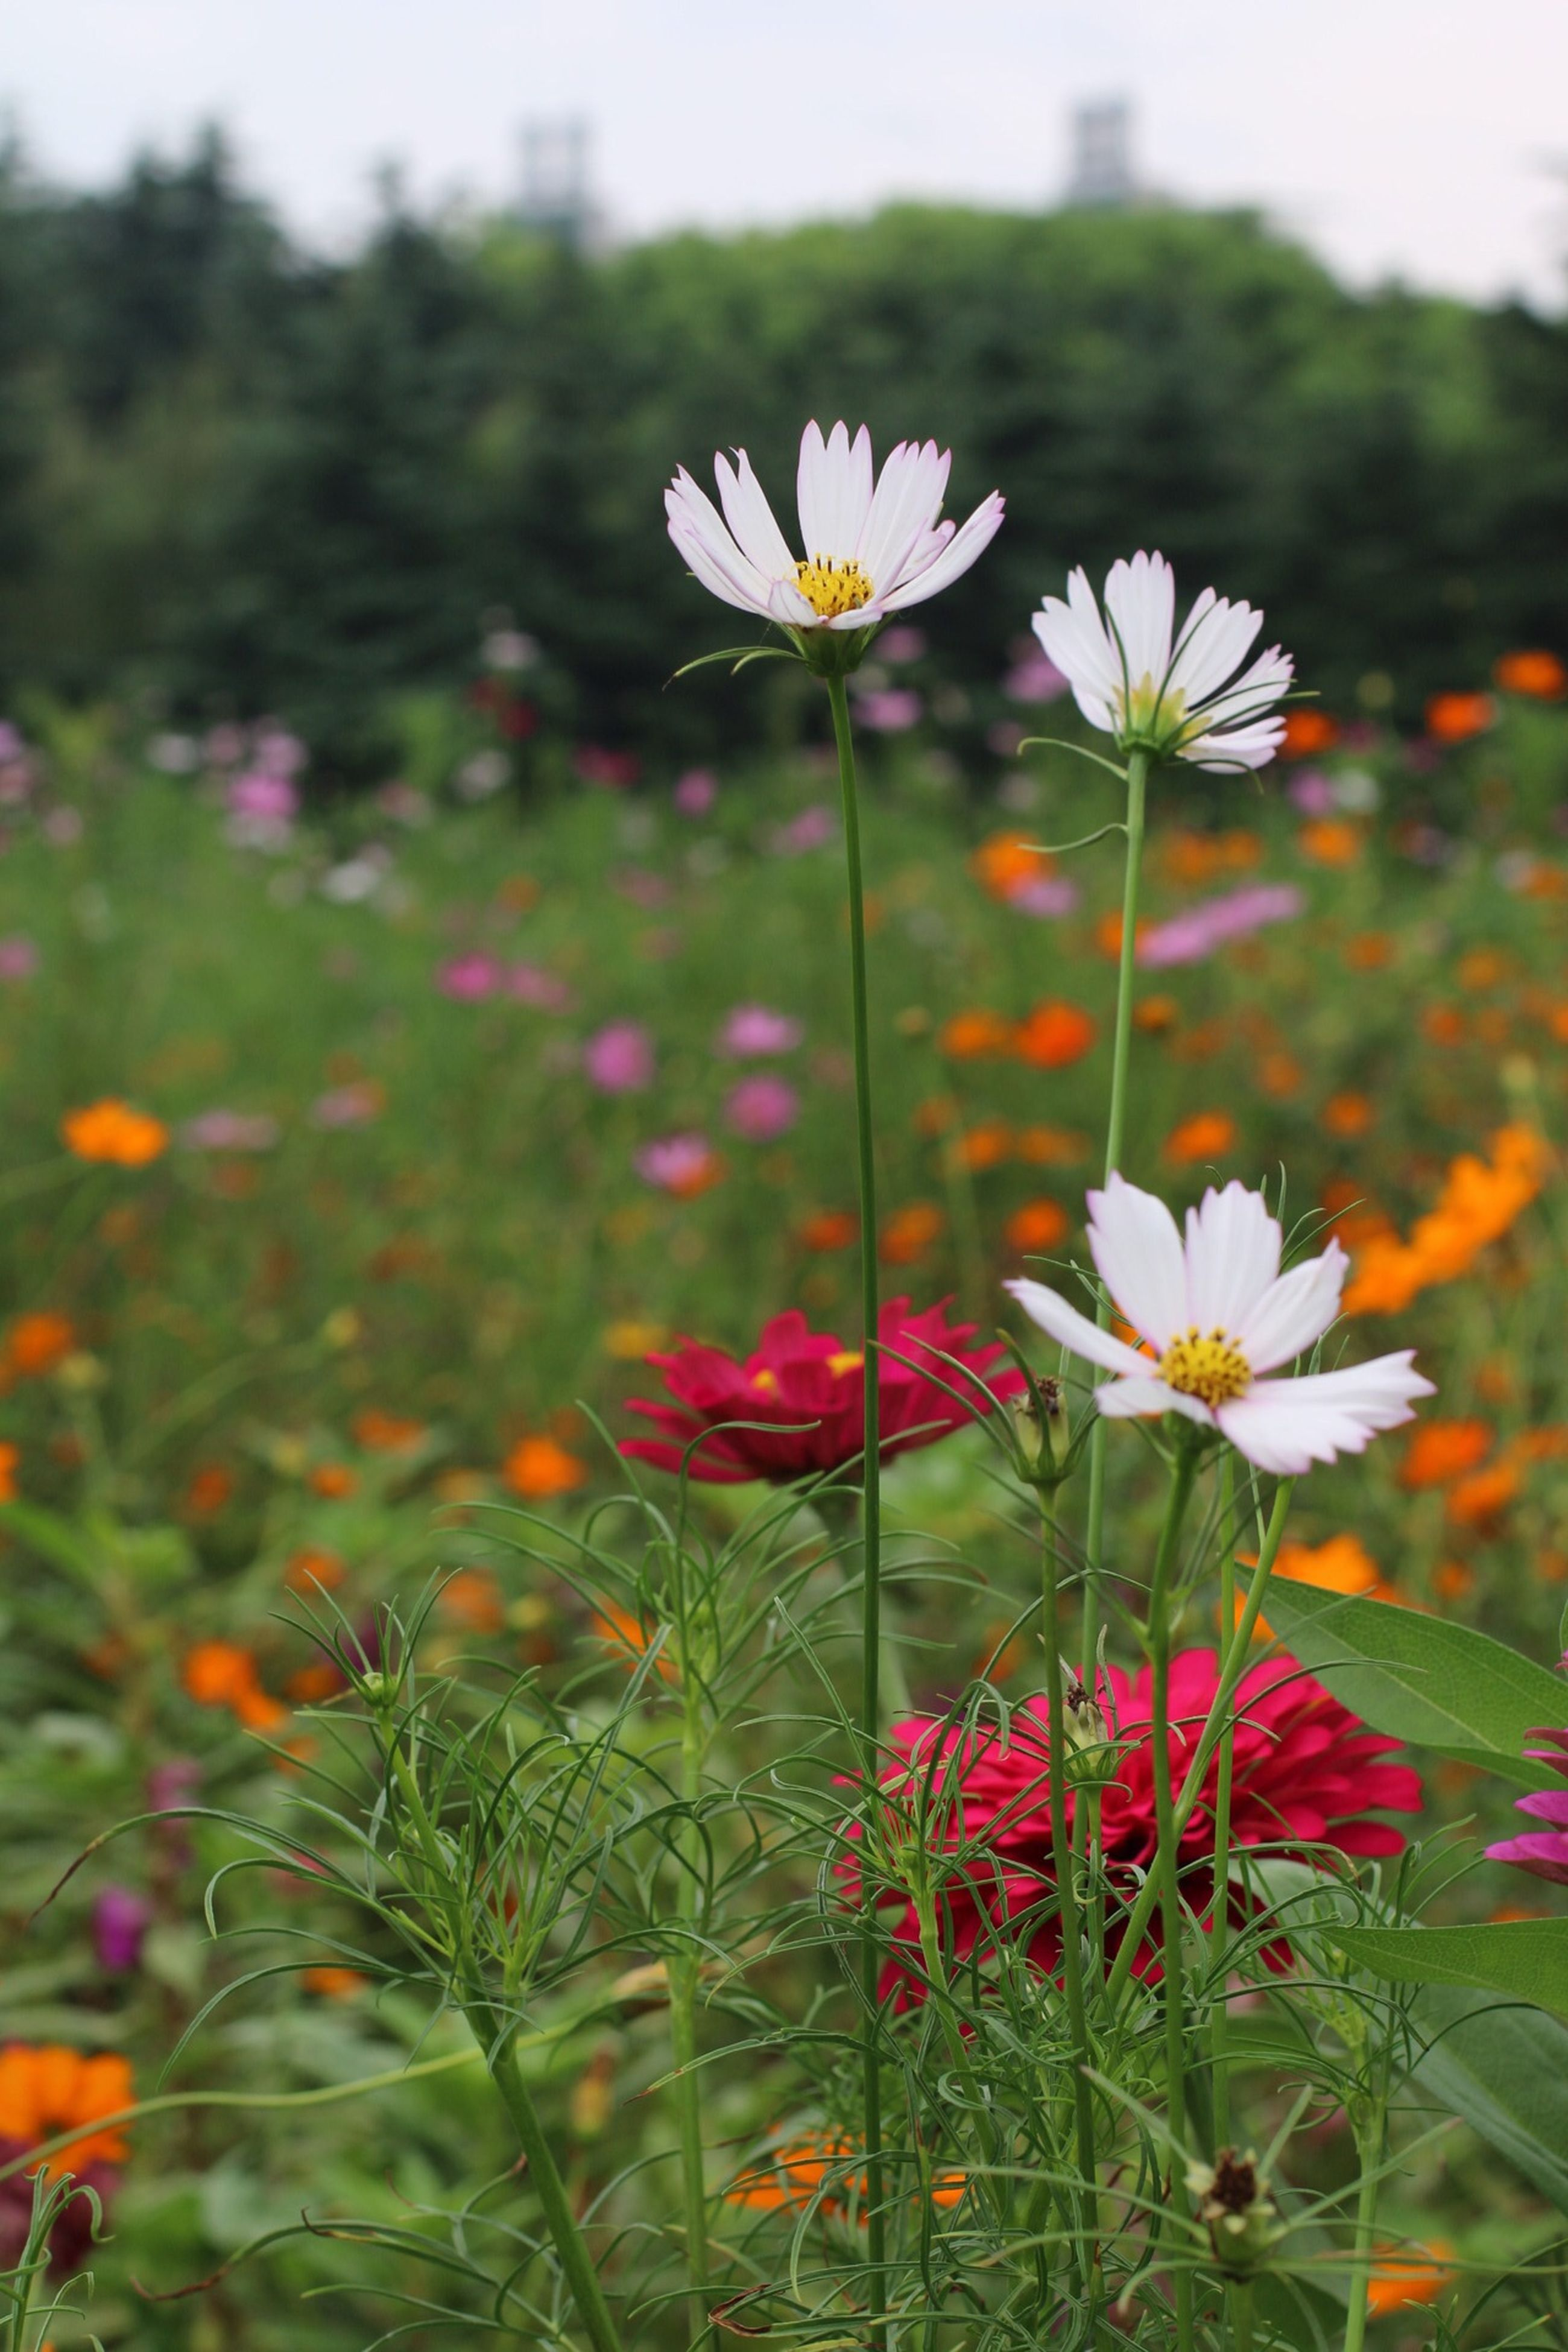 flower, freshness, fragility, petal, growth, flower head, beauty in nature, stem, blooming, plant, nature, field, focus on foreground, in bloom, close-up, white color, blossom, botany, day, daisy